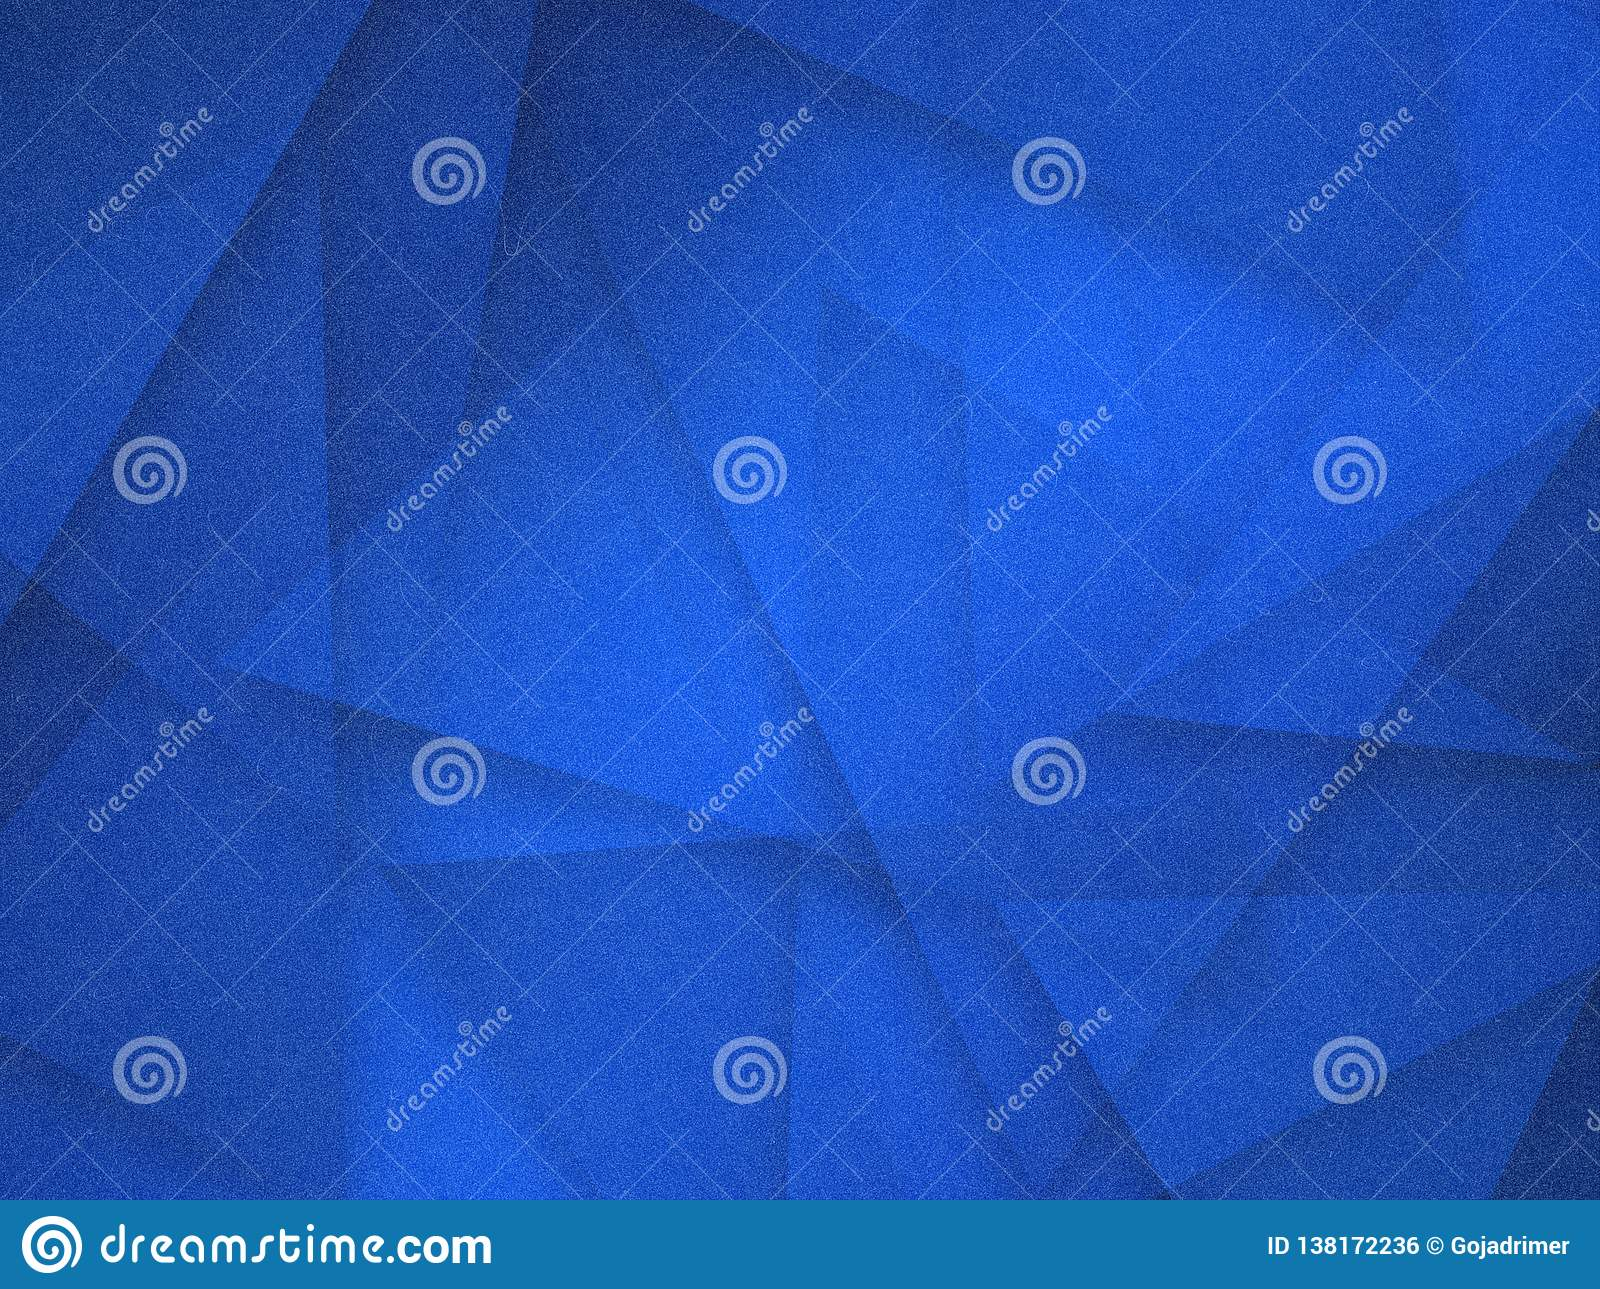 Abstract blue background with white transparent triangle layers in random pattern, with grainy scratch grunge texture